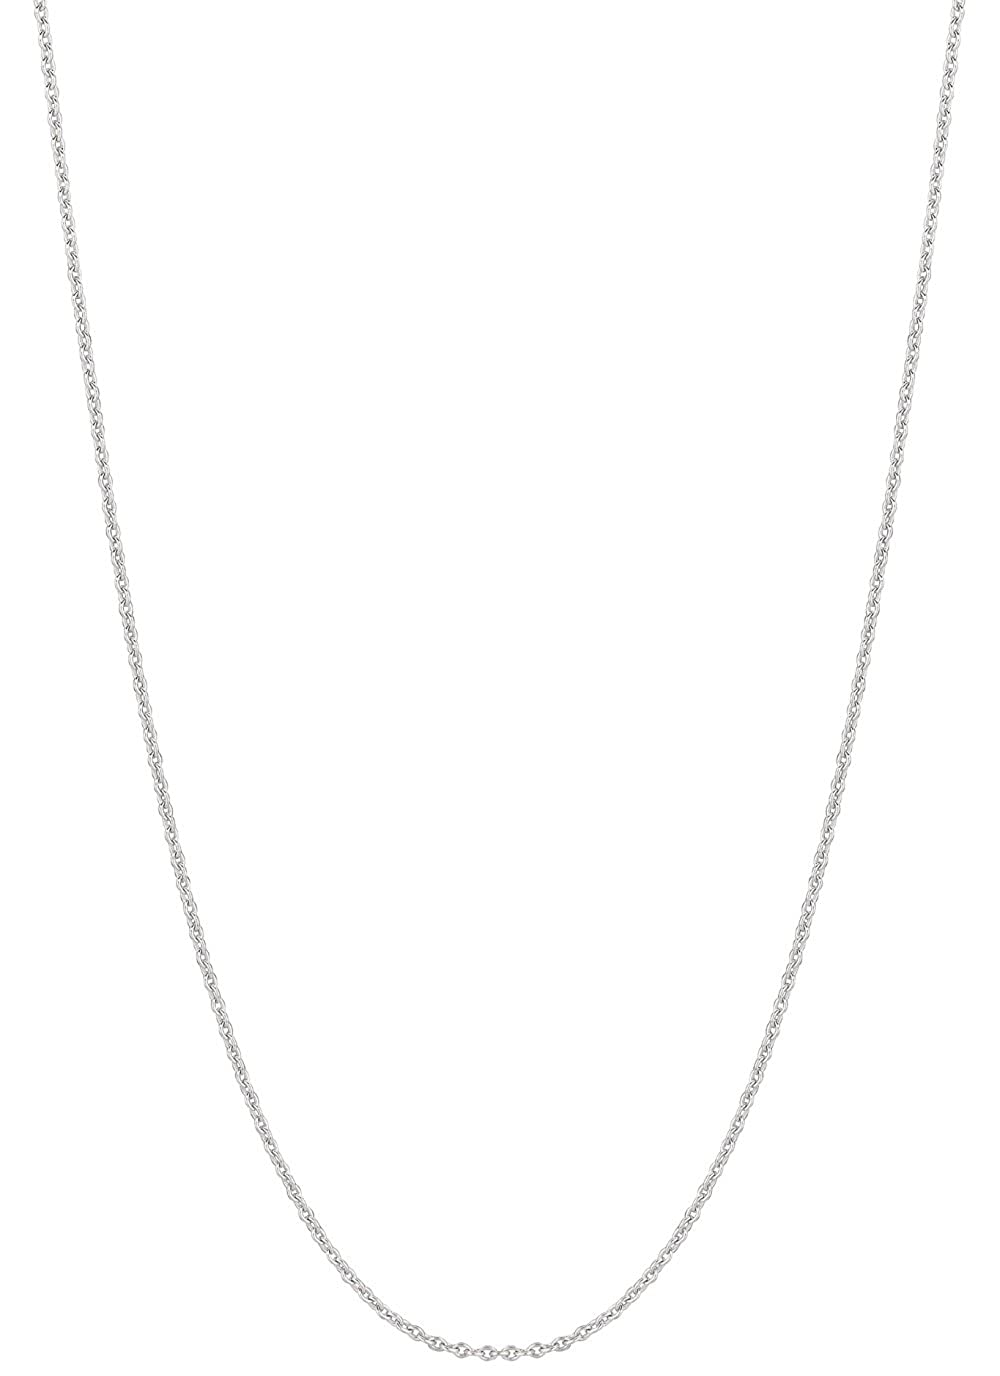 18kt 16 White Gold 1.5mm Diamond Cut Round Cable Chain with Lobster Clasp